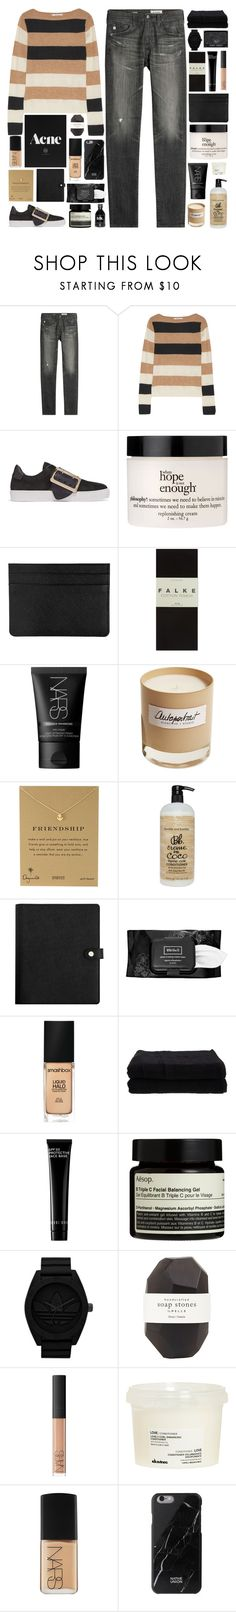 """""""Open your eyes and look at my ambition"""" by pure-and-valuable ❤ liked on Polyvore featuring AG Adriano Goldschmied, MaxMara, Burberry, philosophy, Falke, NARS Cosmetics, Olfactive Studio, Dogeared, Bumble and bumble and Kat Von D"""